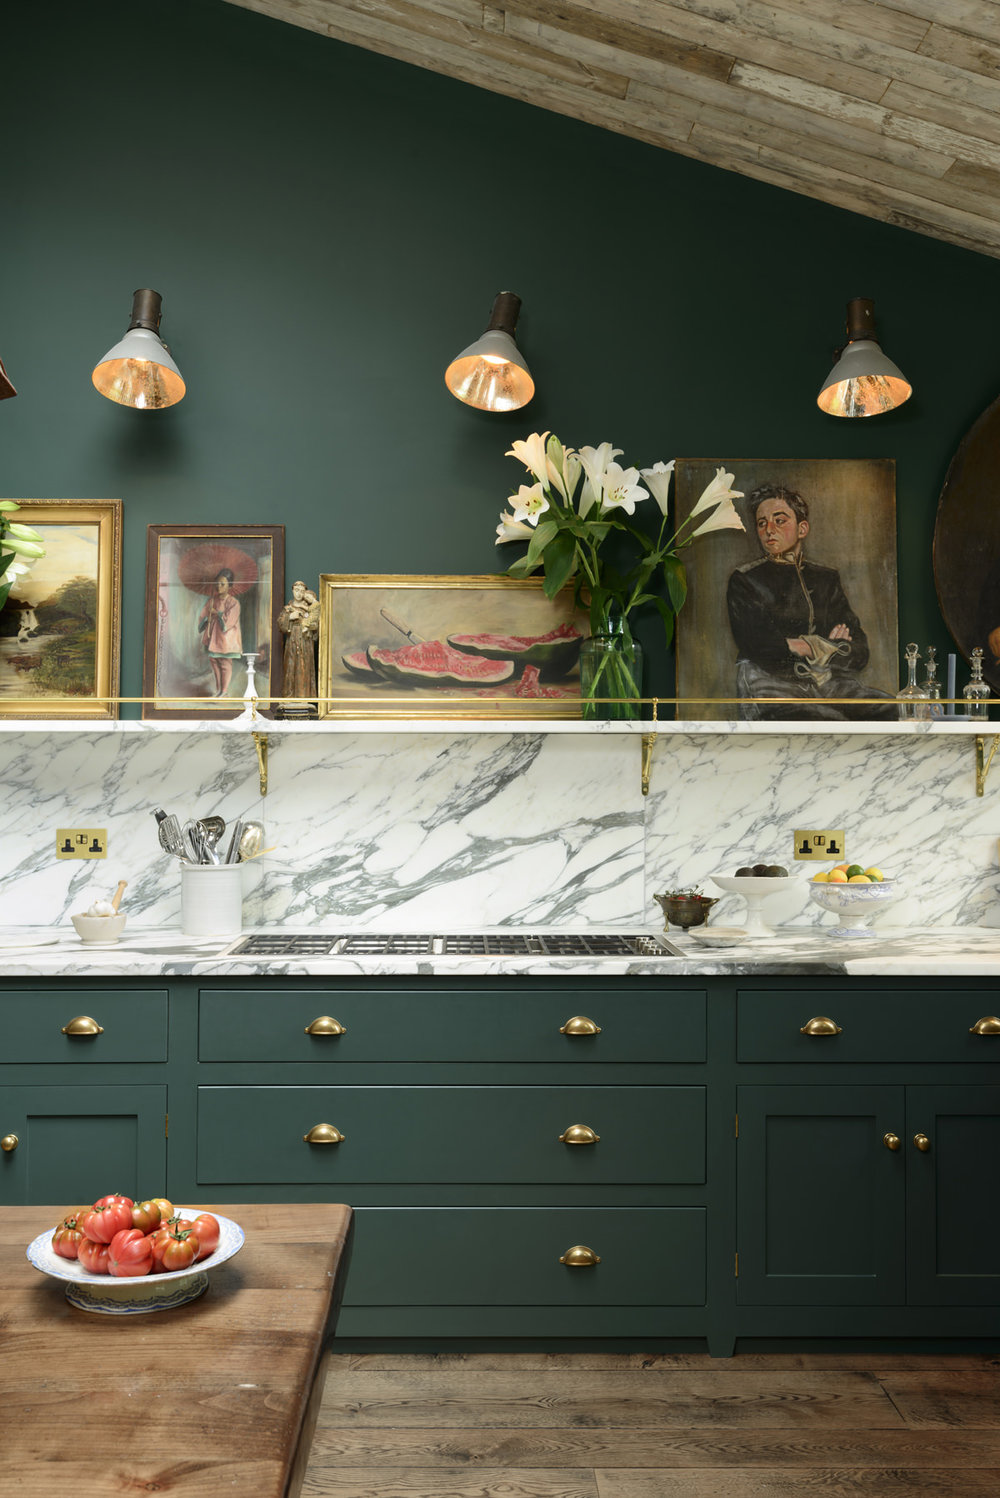 Style and elegance abounds here with the dark green, brass detailing and stunning marble. This is just a dream! Image credit:  DeVOL Kitchens